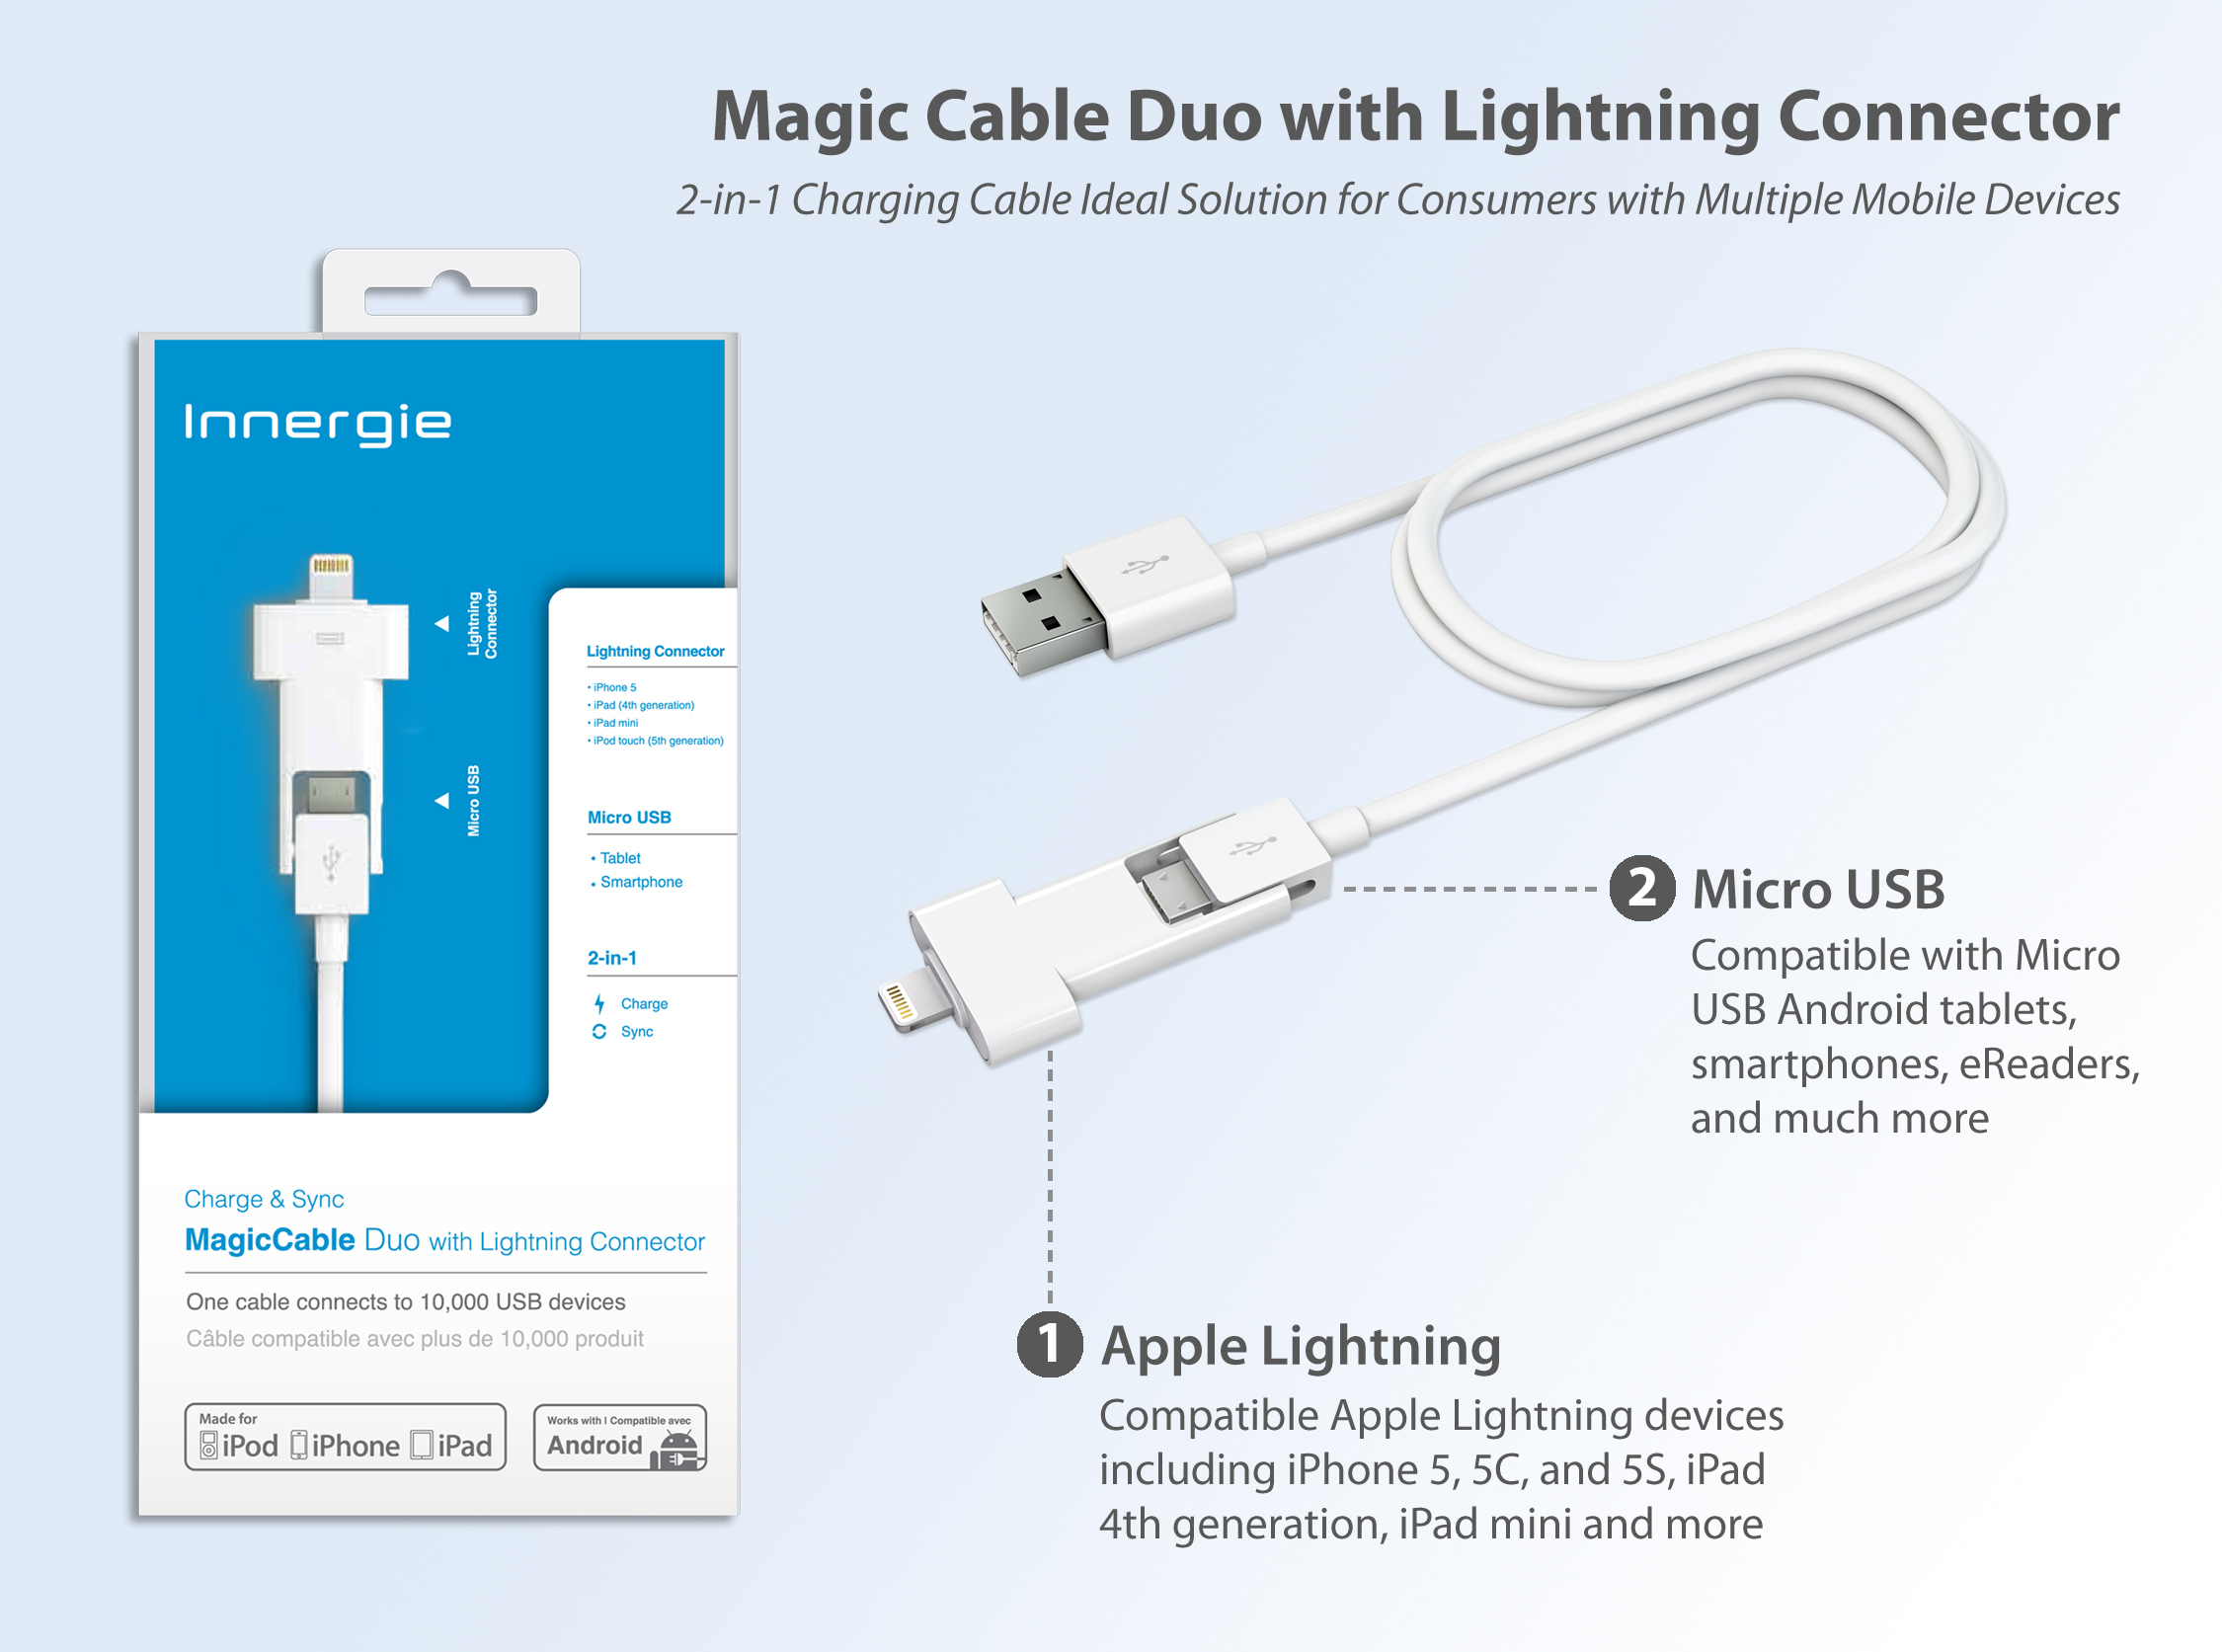 innergie introduces magicable u2122 duo with lightning lightning connector wiring color lightning connector pin out wiring diagram [ 2250 x 1673 Pixel ]